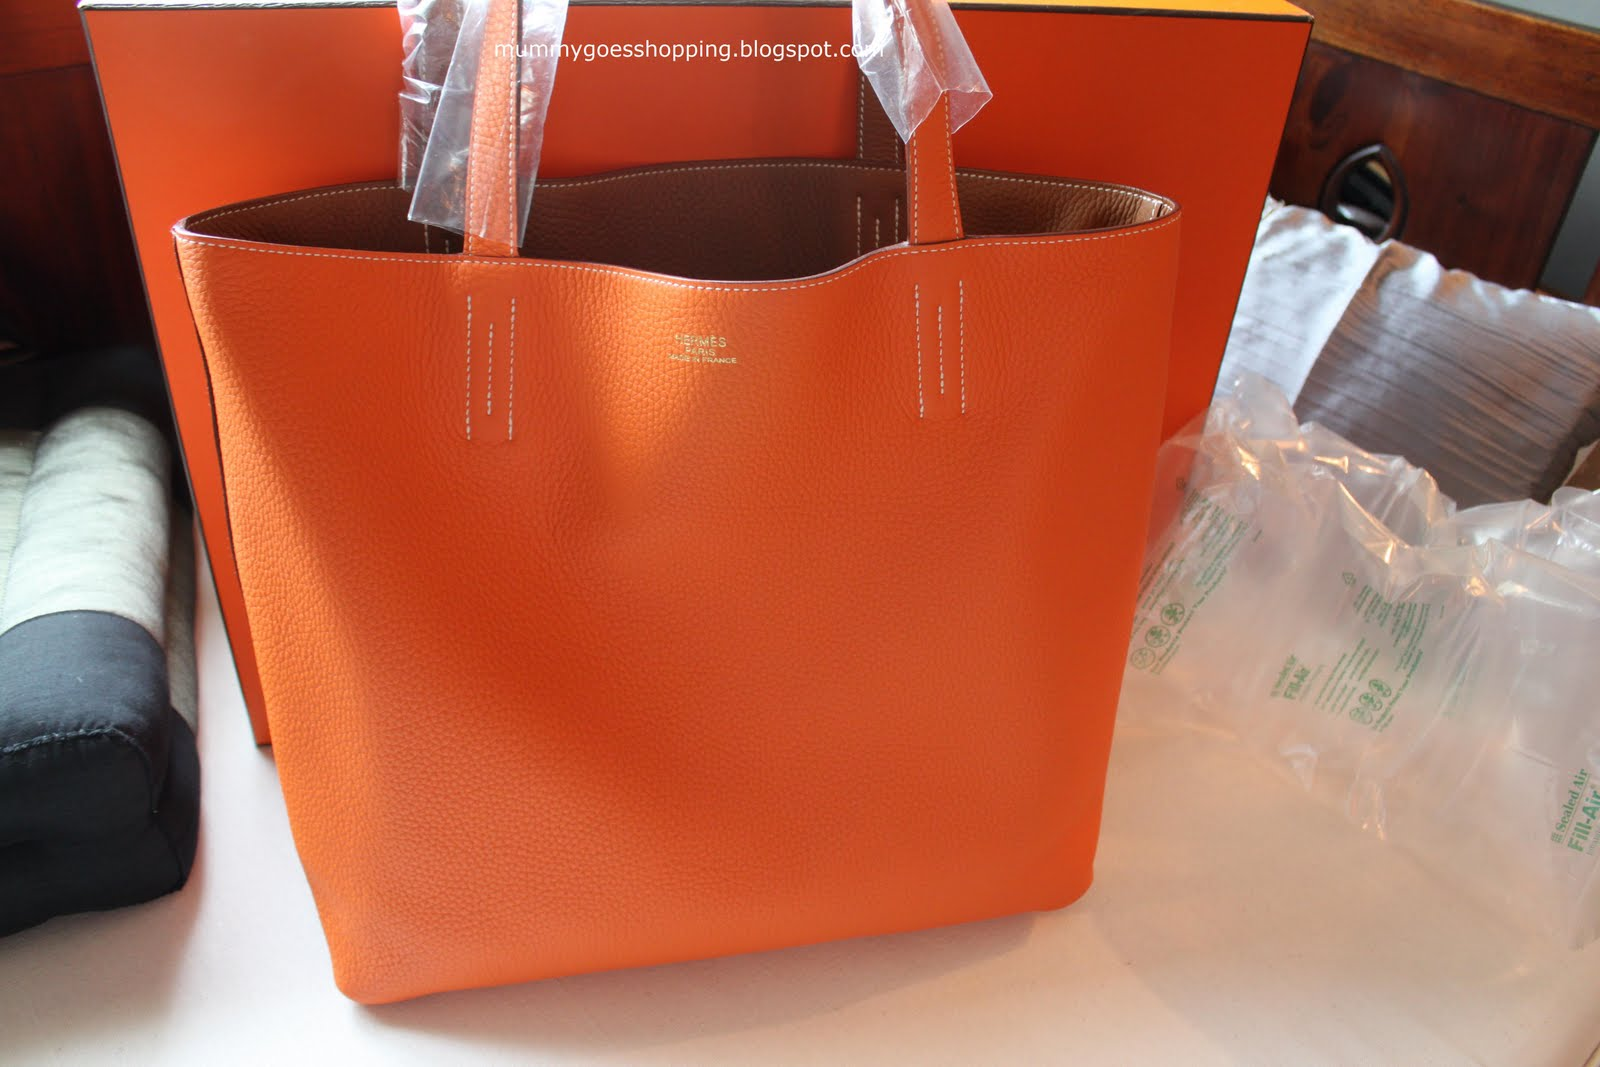 SOLD! Hermes Double Sens Bag